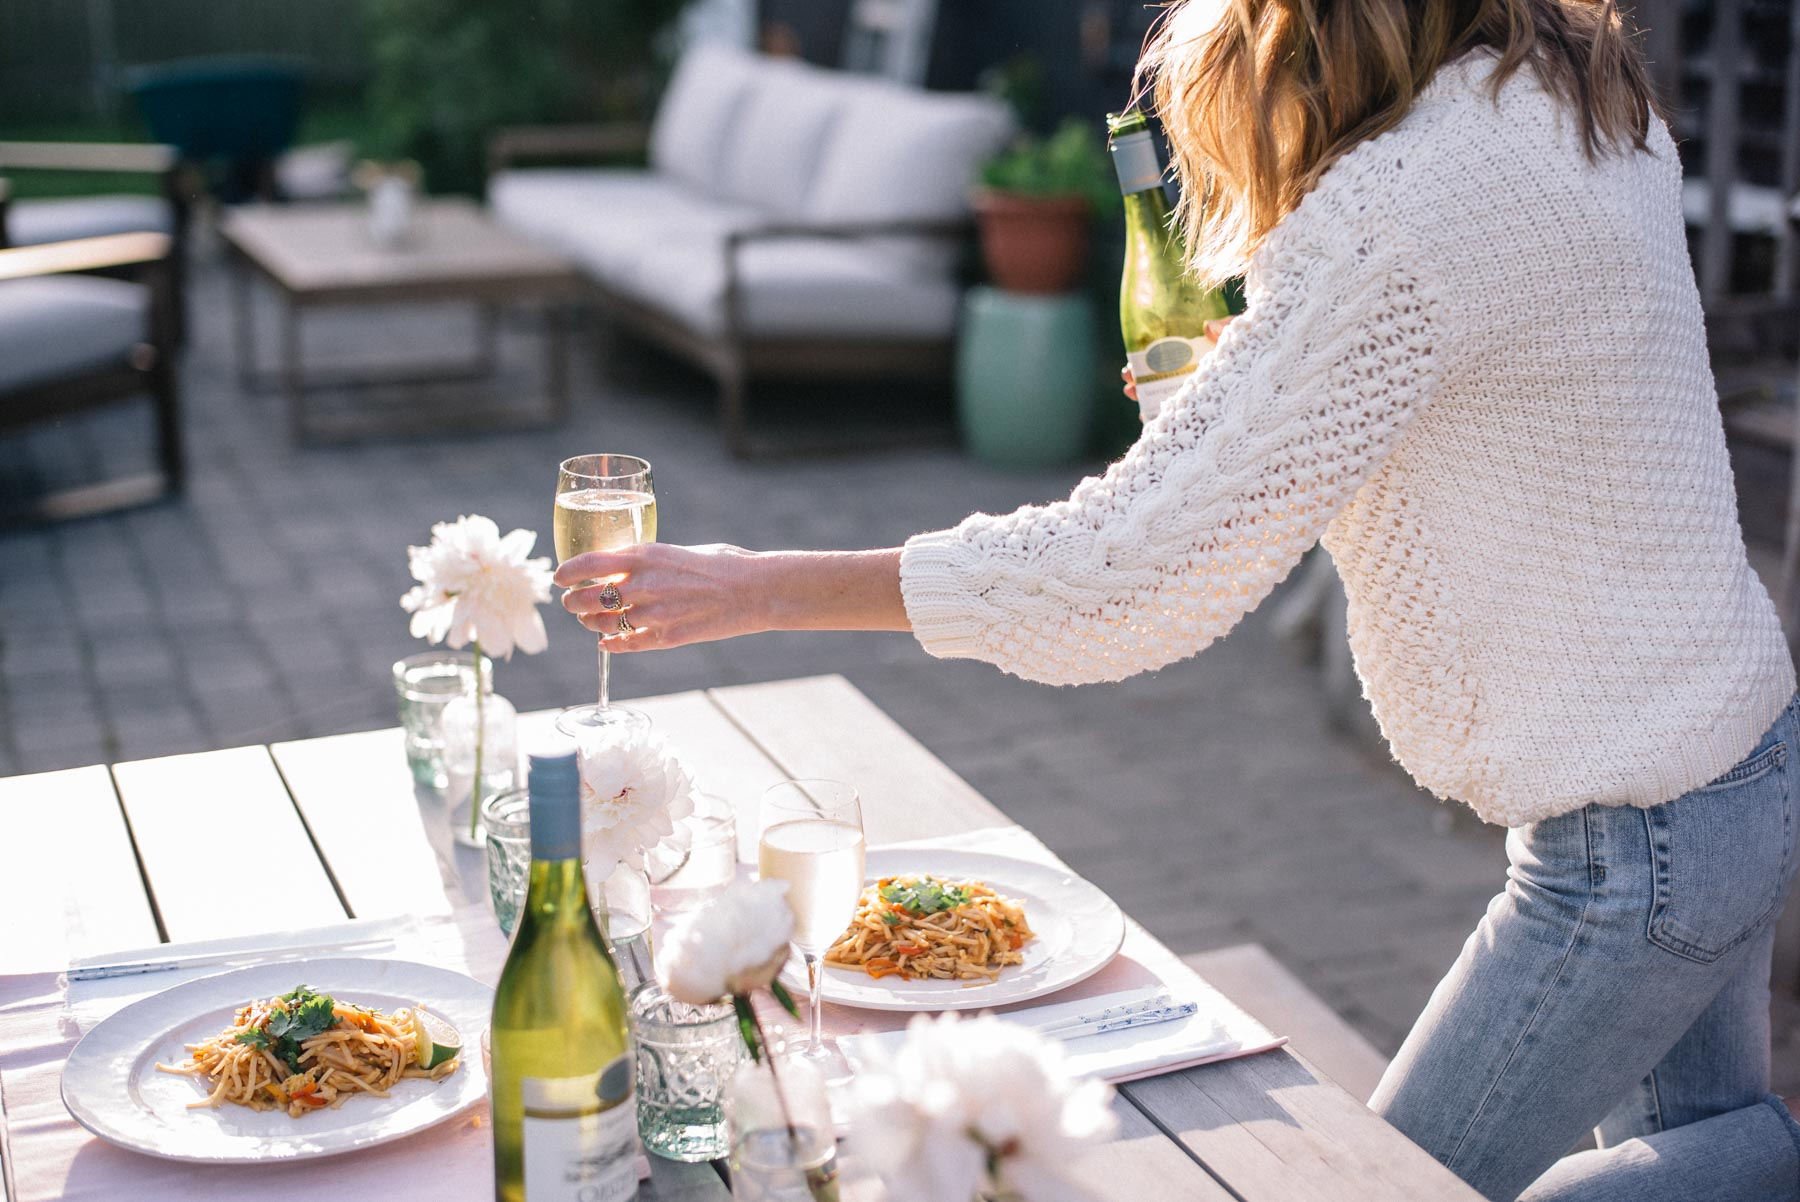 Jess Ann Kirby enjoys her outdoor patio with an at-home date night and Oyster Bay sauvignon blanc